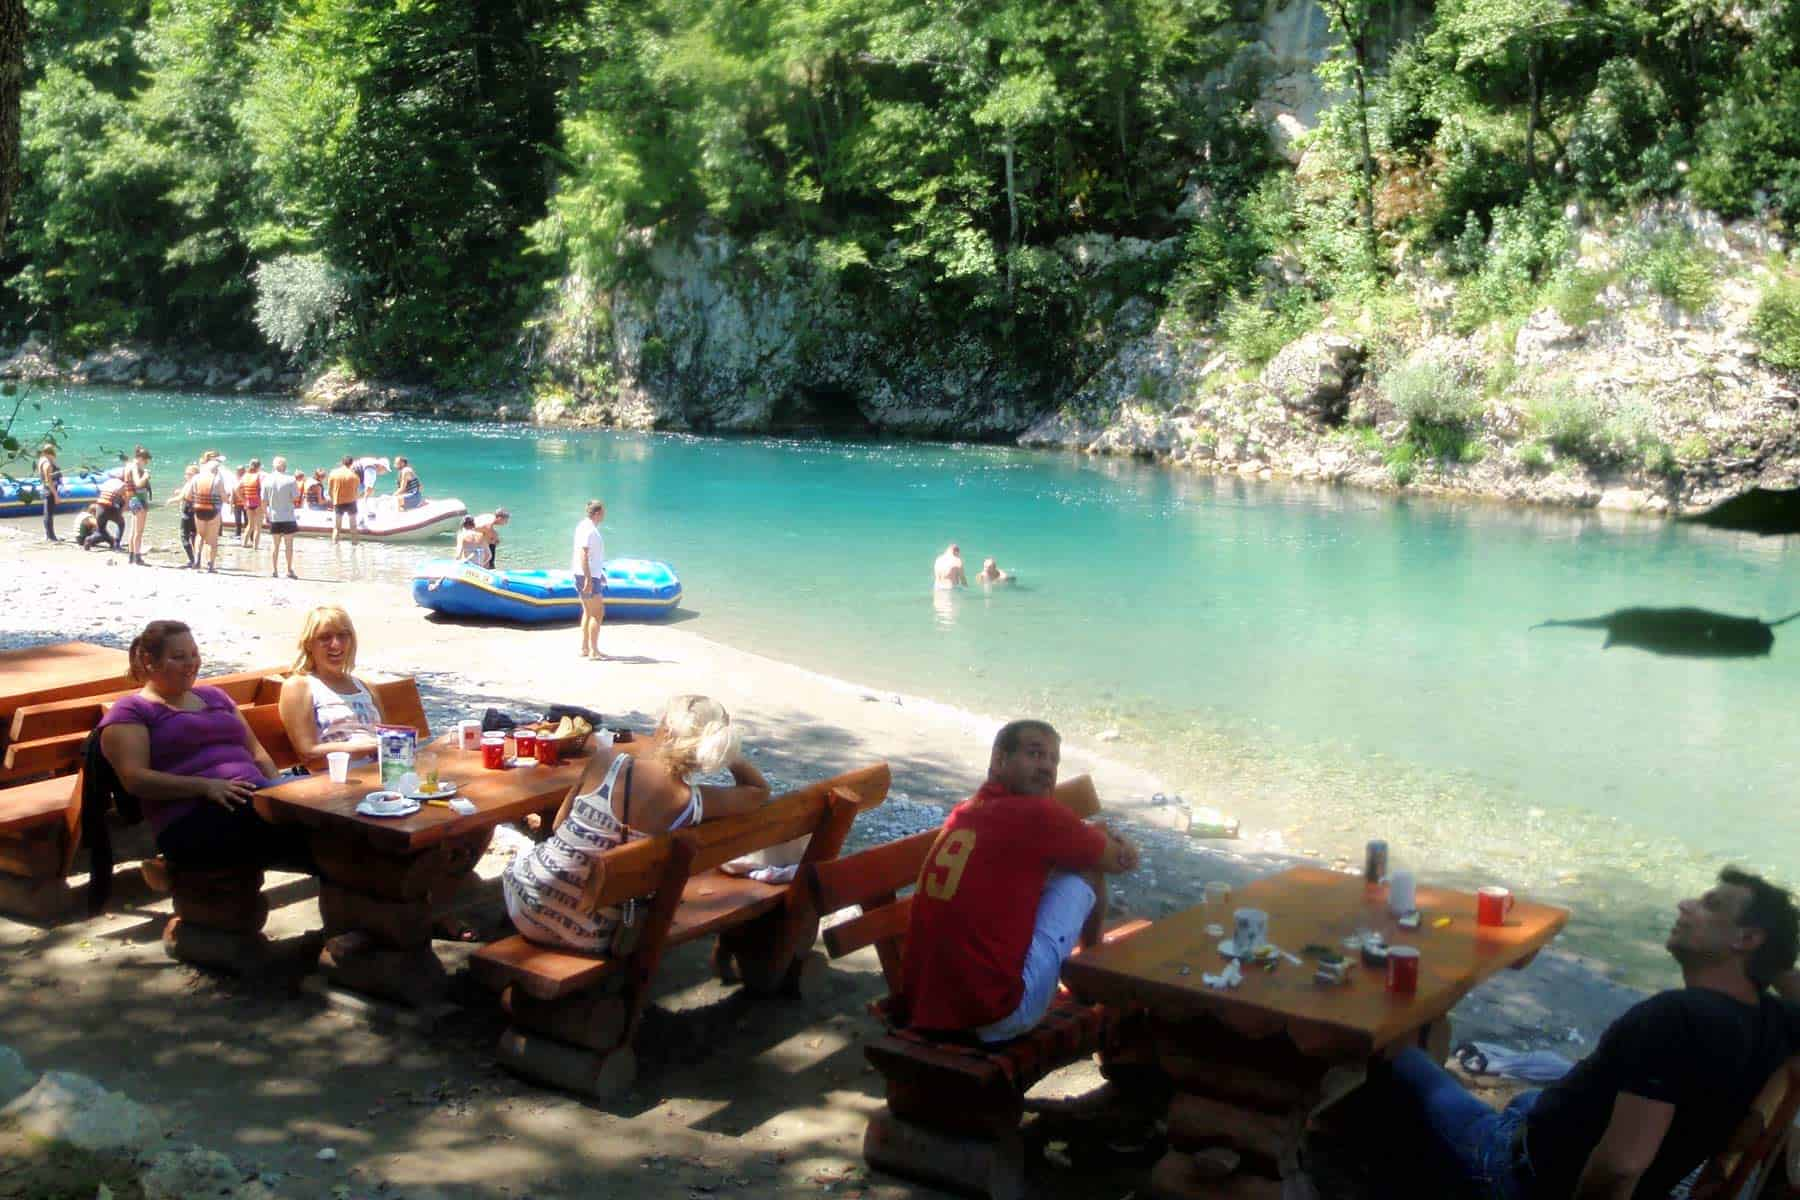 Emjoying a meal and drinks after rafting adventure